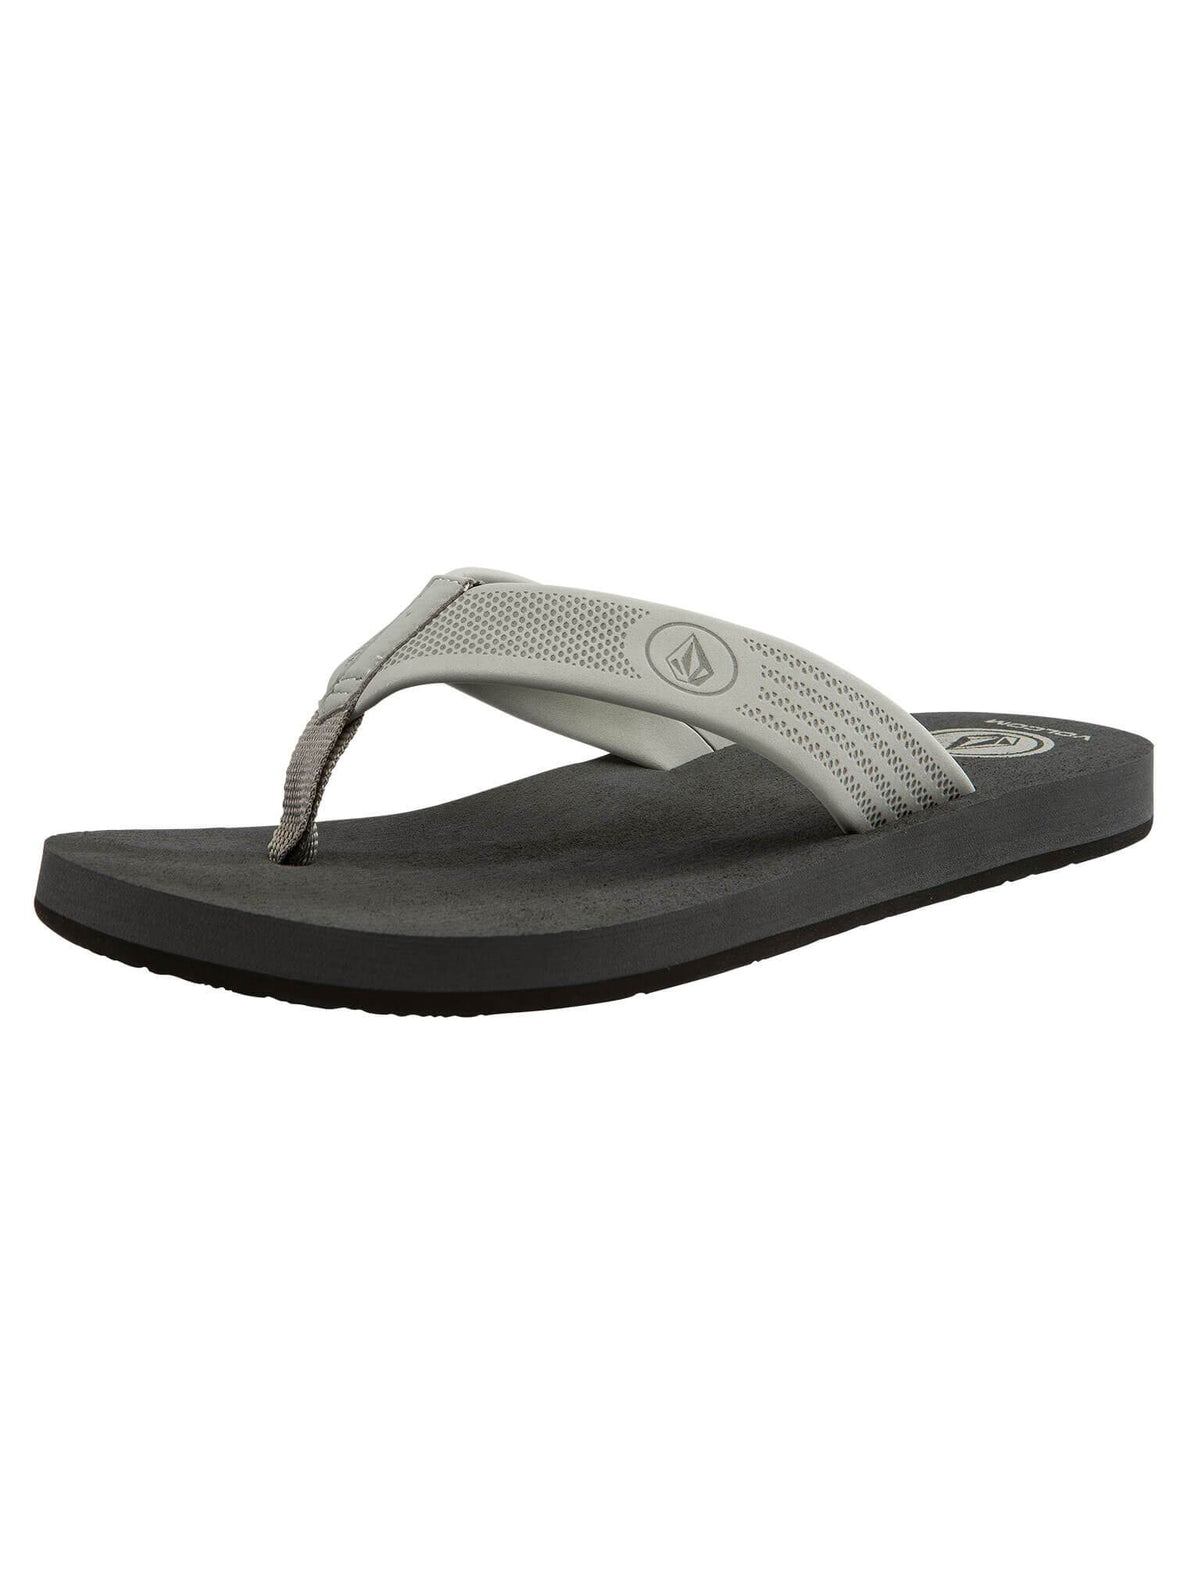 Daycation Sandals In Neutral Grey, Back View